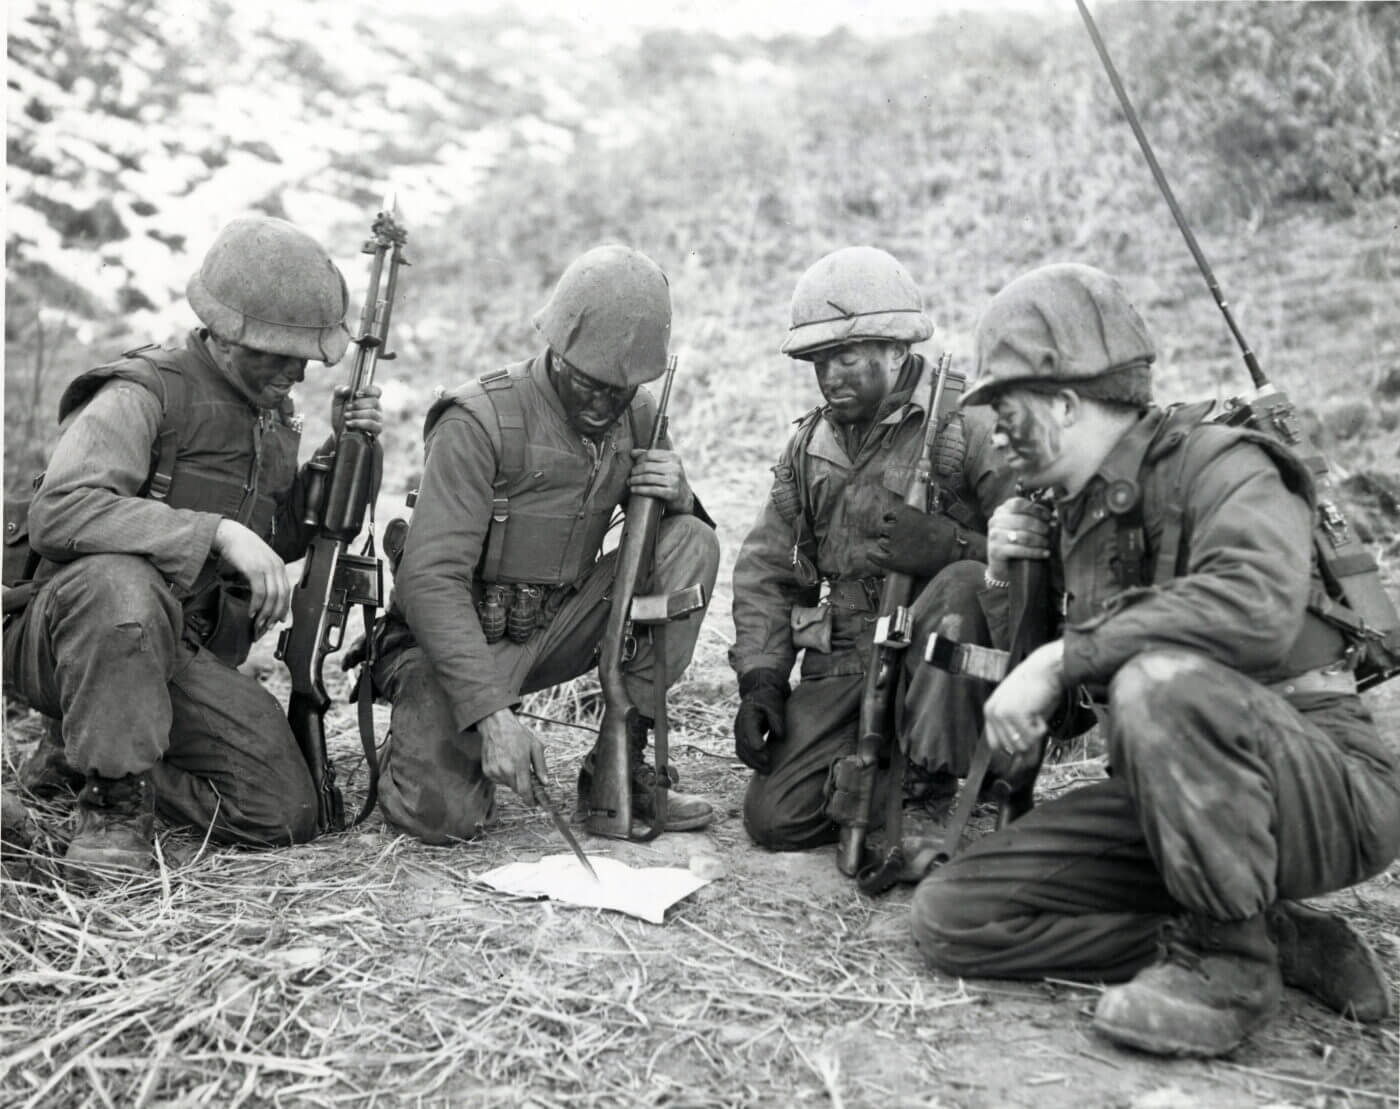 M2 Carbines in Korea, along with a BAR rifle